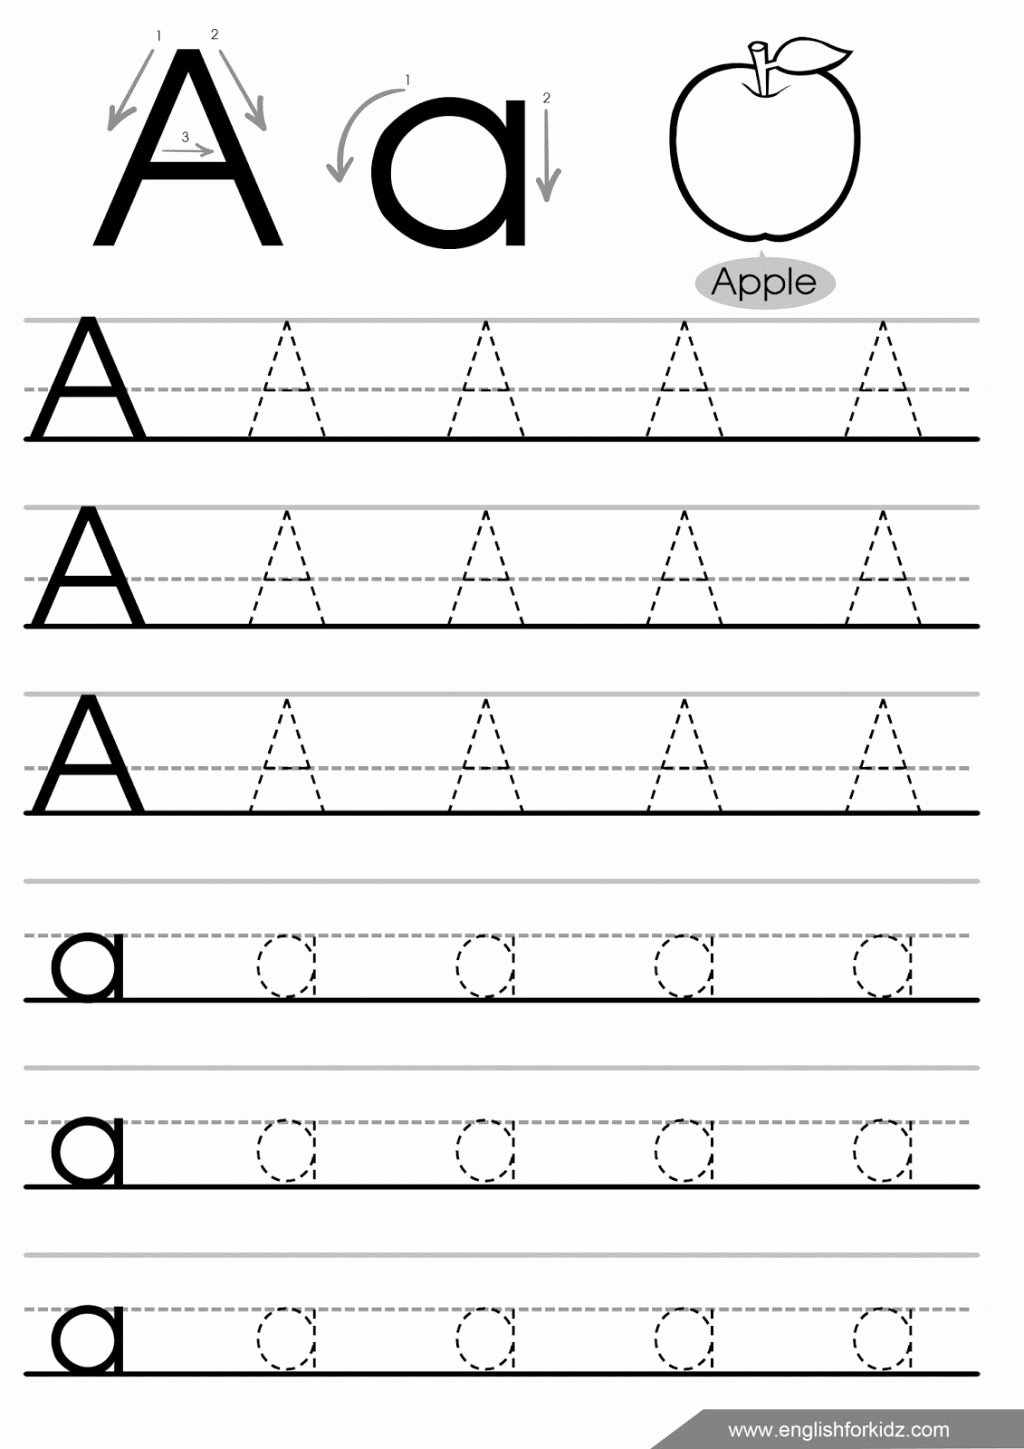 Free Printable Tracing Worksheets for Preschoolers New Worksheet Tracing Worksheets Letter Worksheet for Apple